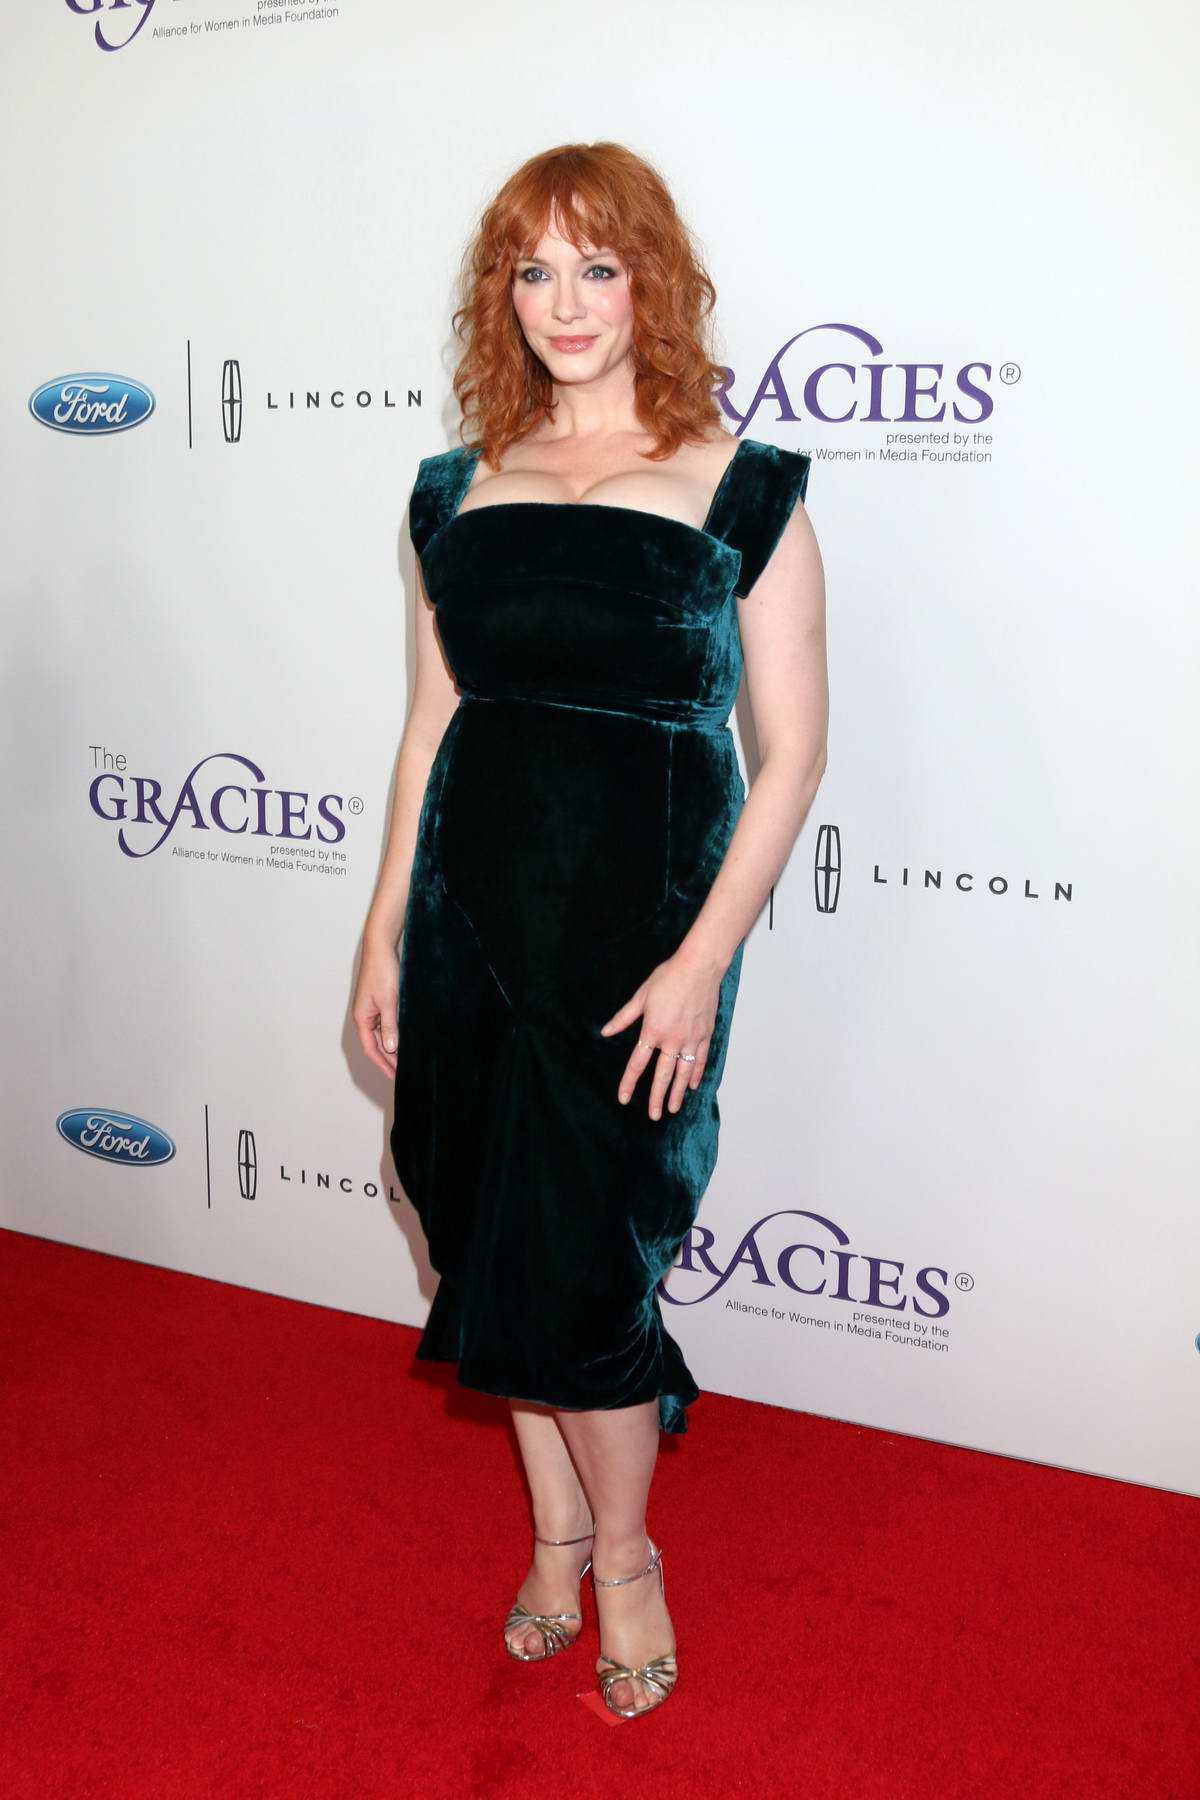 Christina Hendricks attends the 44th Annual Gracie Awards at Beverly Wilshire in Los Angeles